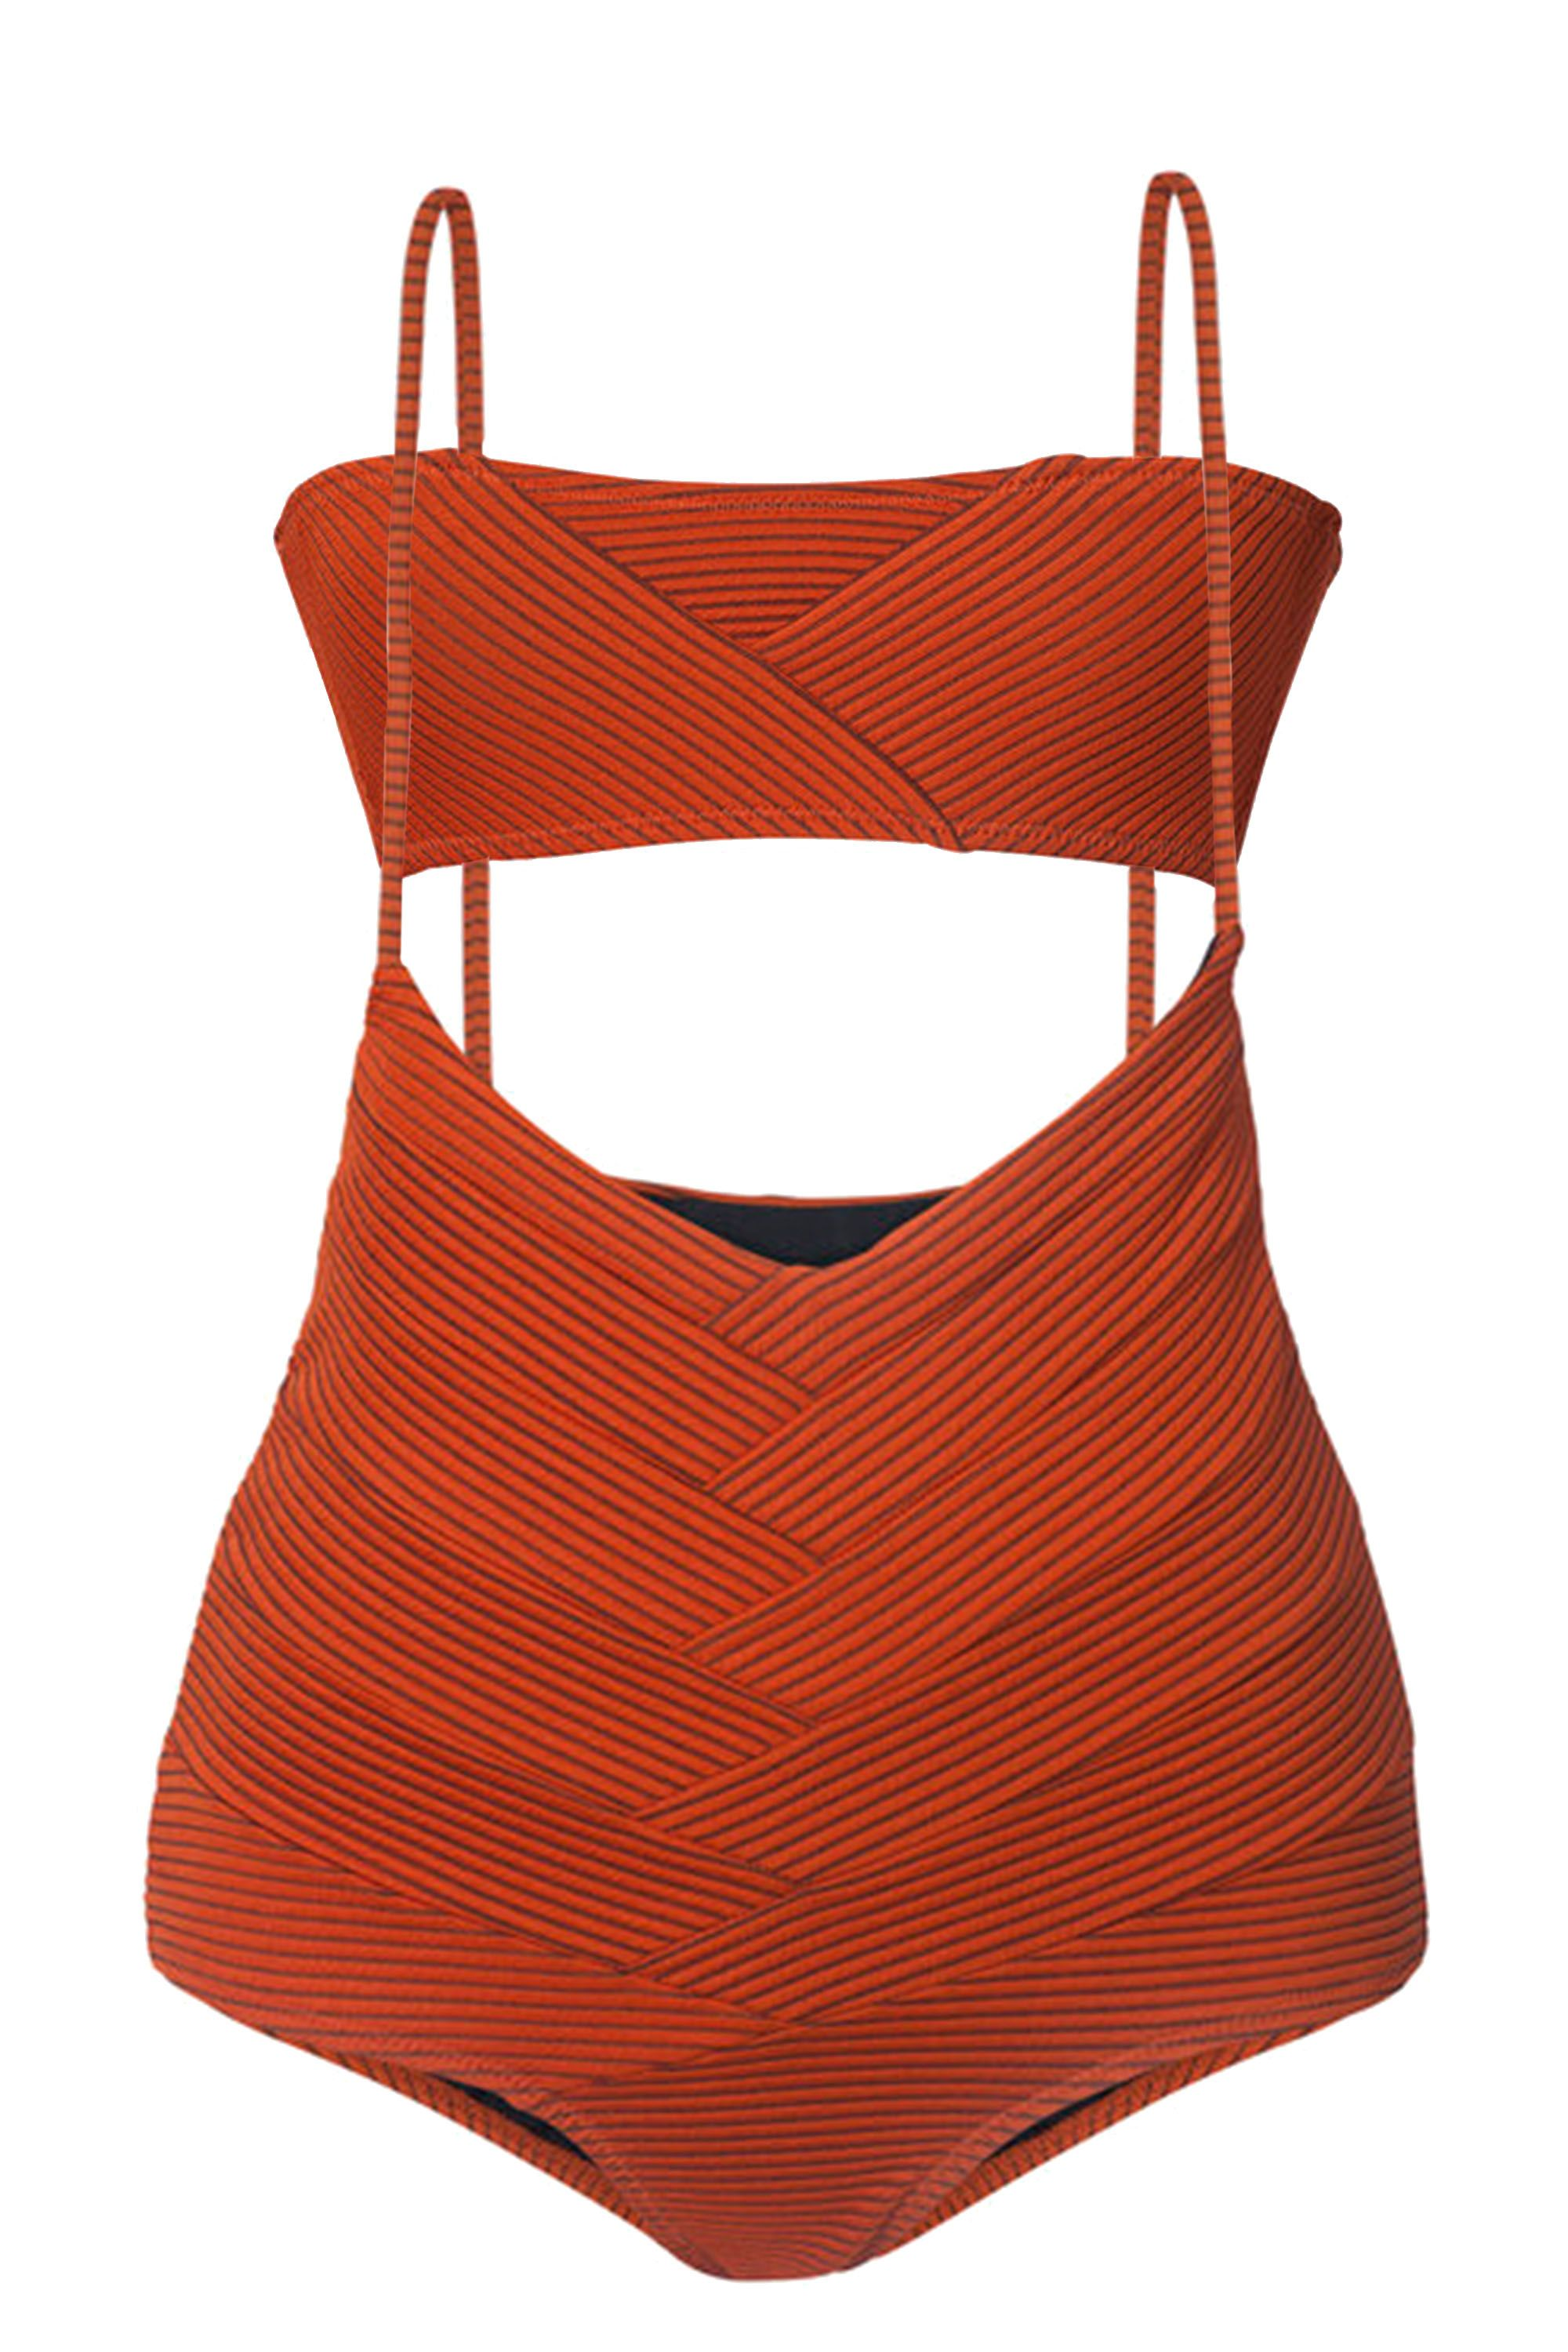 e082a27193 22 Cute Swimsuits To Wear This Spring - Sexy Spring 2018 Swimsuits